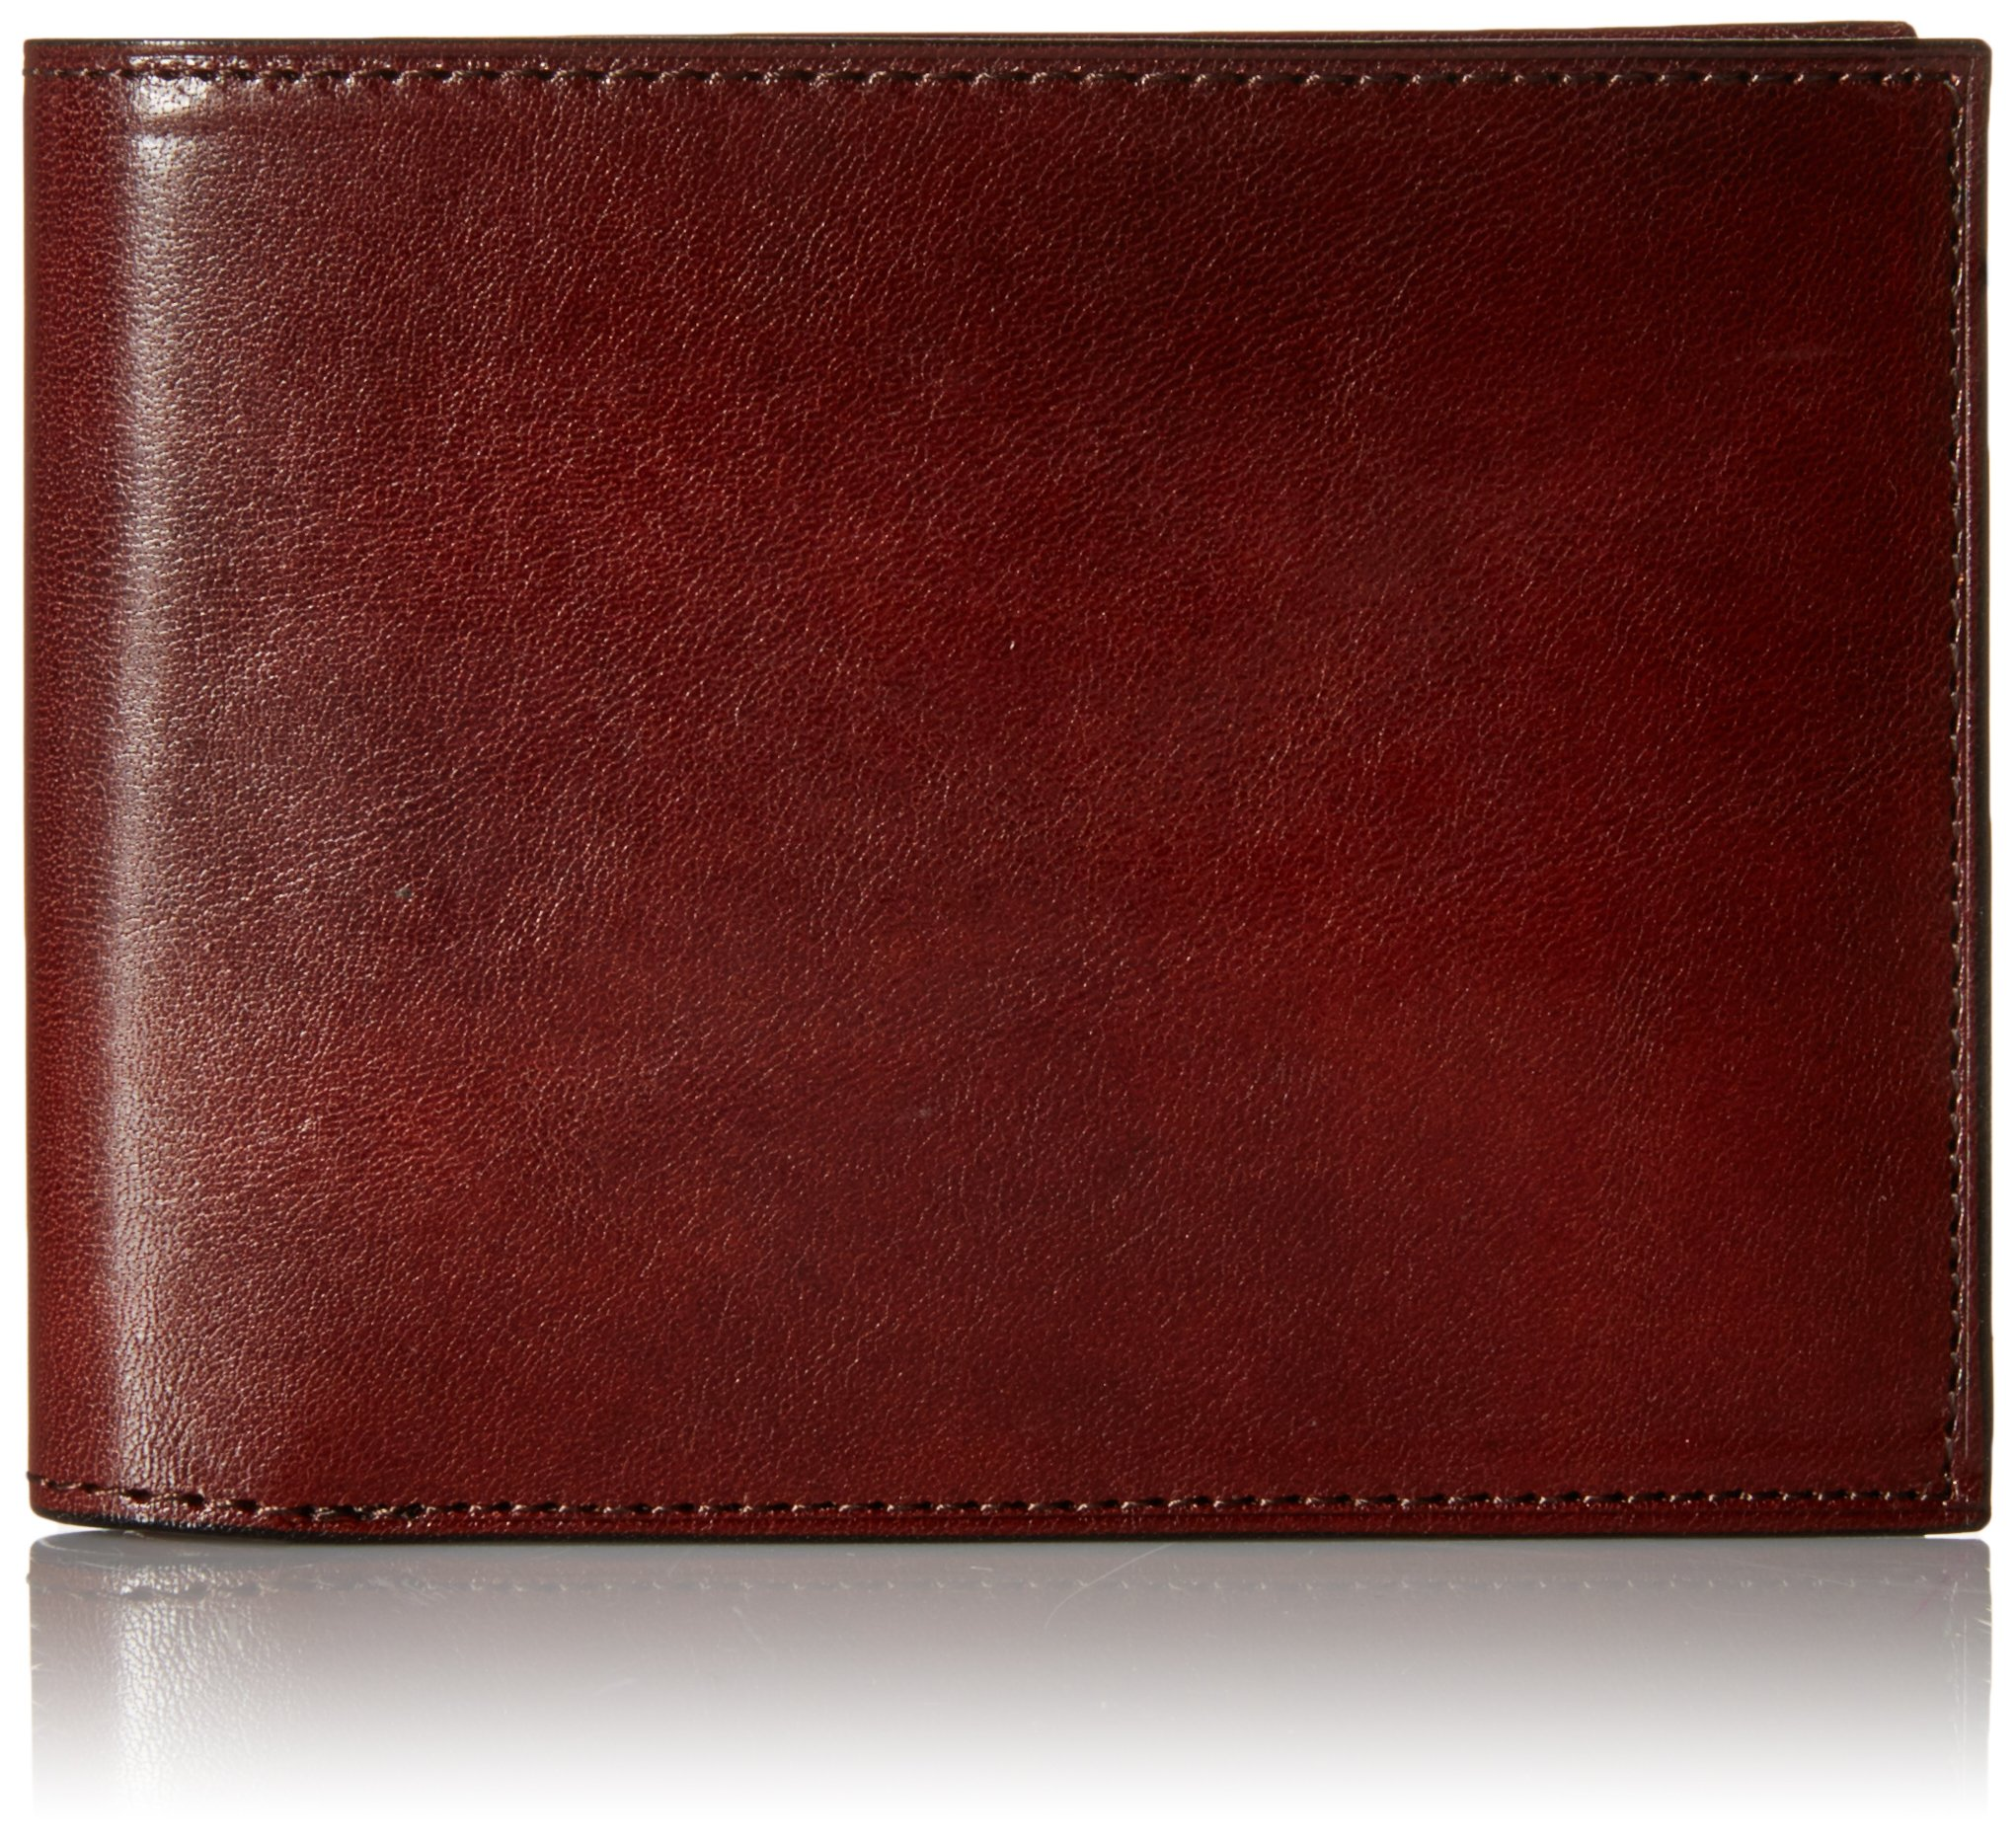 Bosca Old Leather Continental I.D. Wallet - Dark Brown